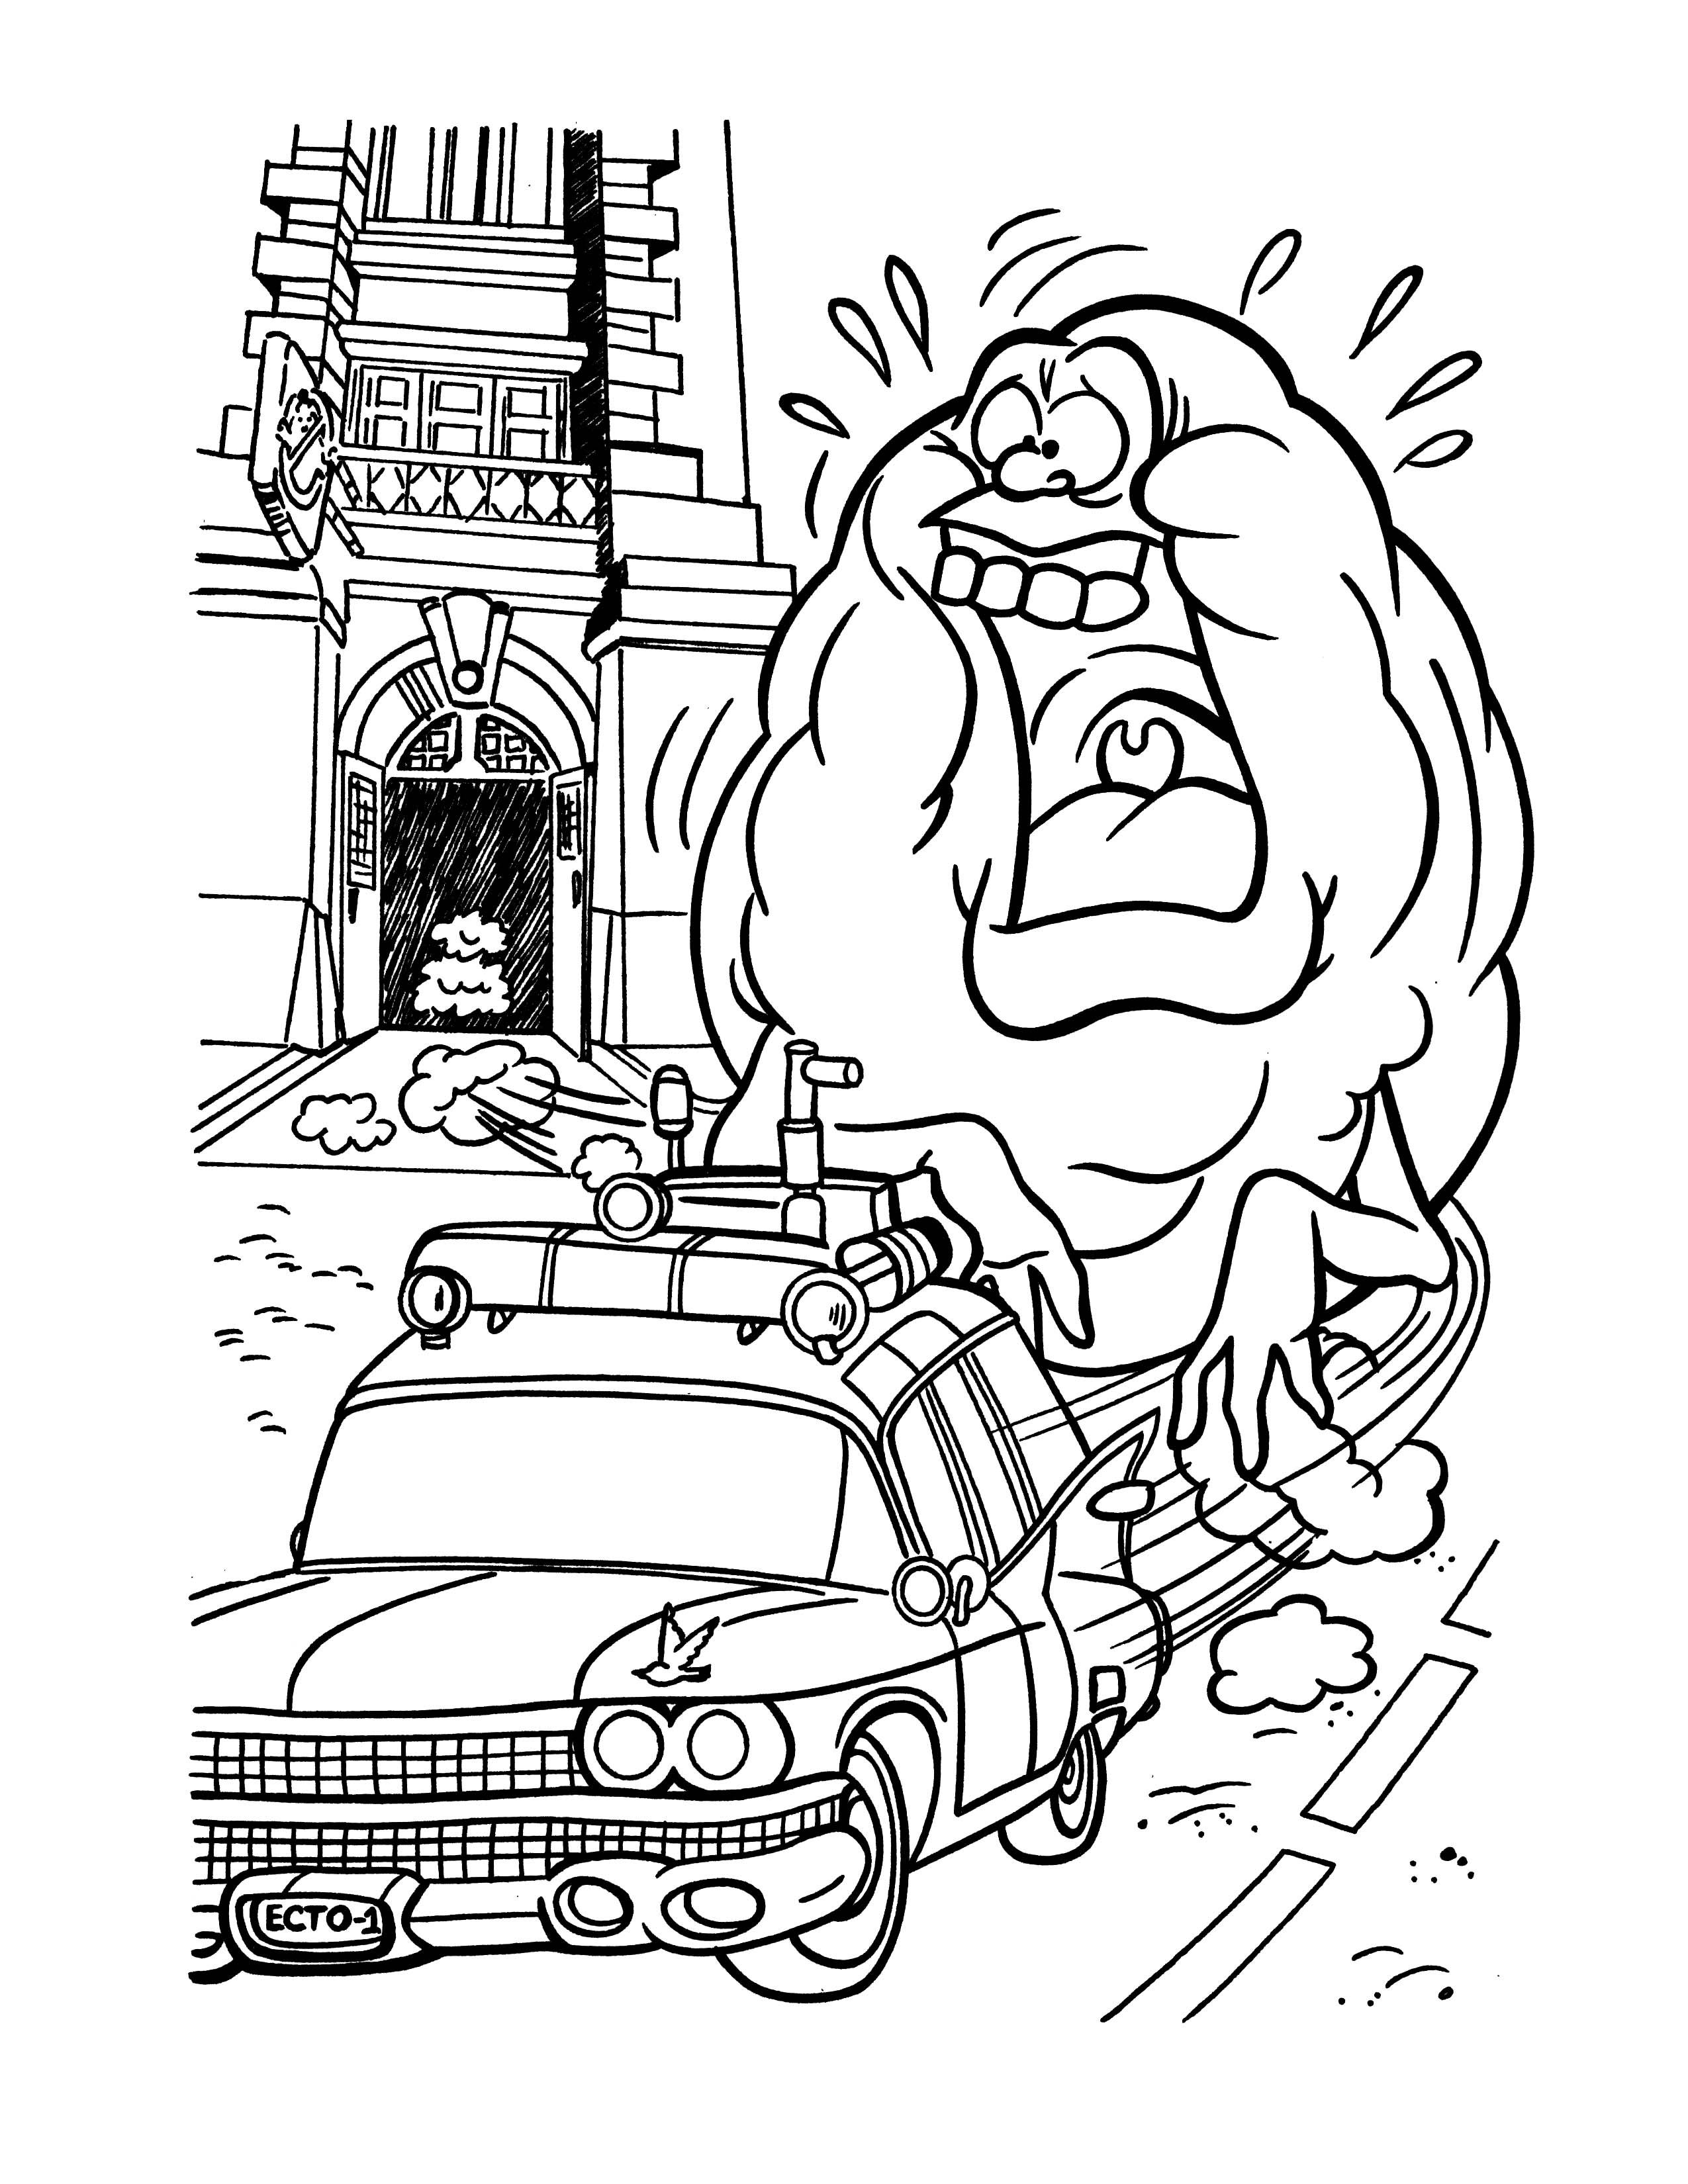 Ghostbusters-Coloring-Pages-For-Kids.jpg (2550×3300) | Kleur ...